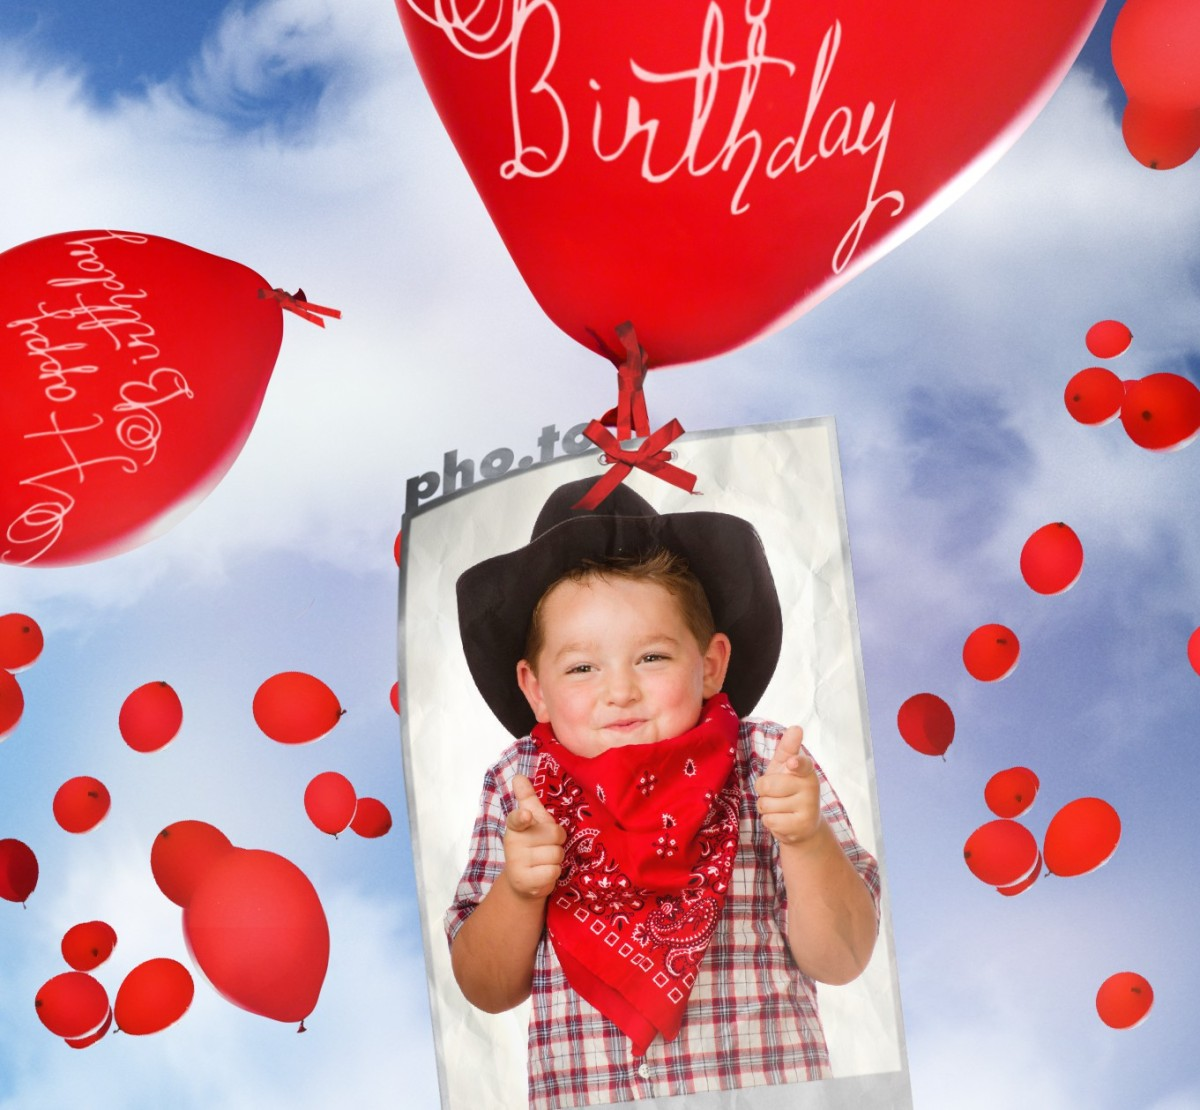 birthday card with flying balloons printable photo template, Birthday card